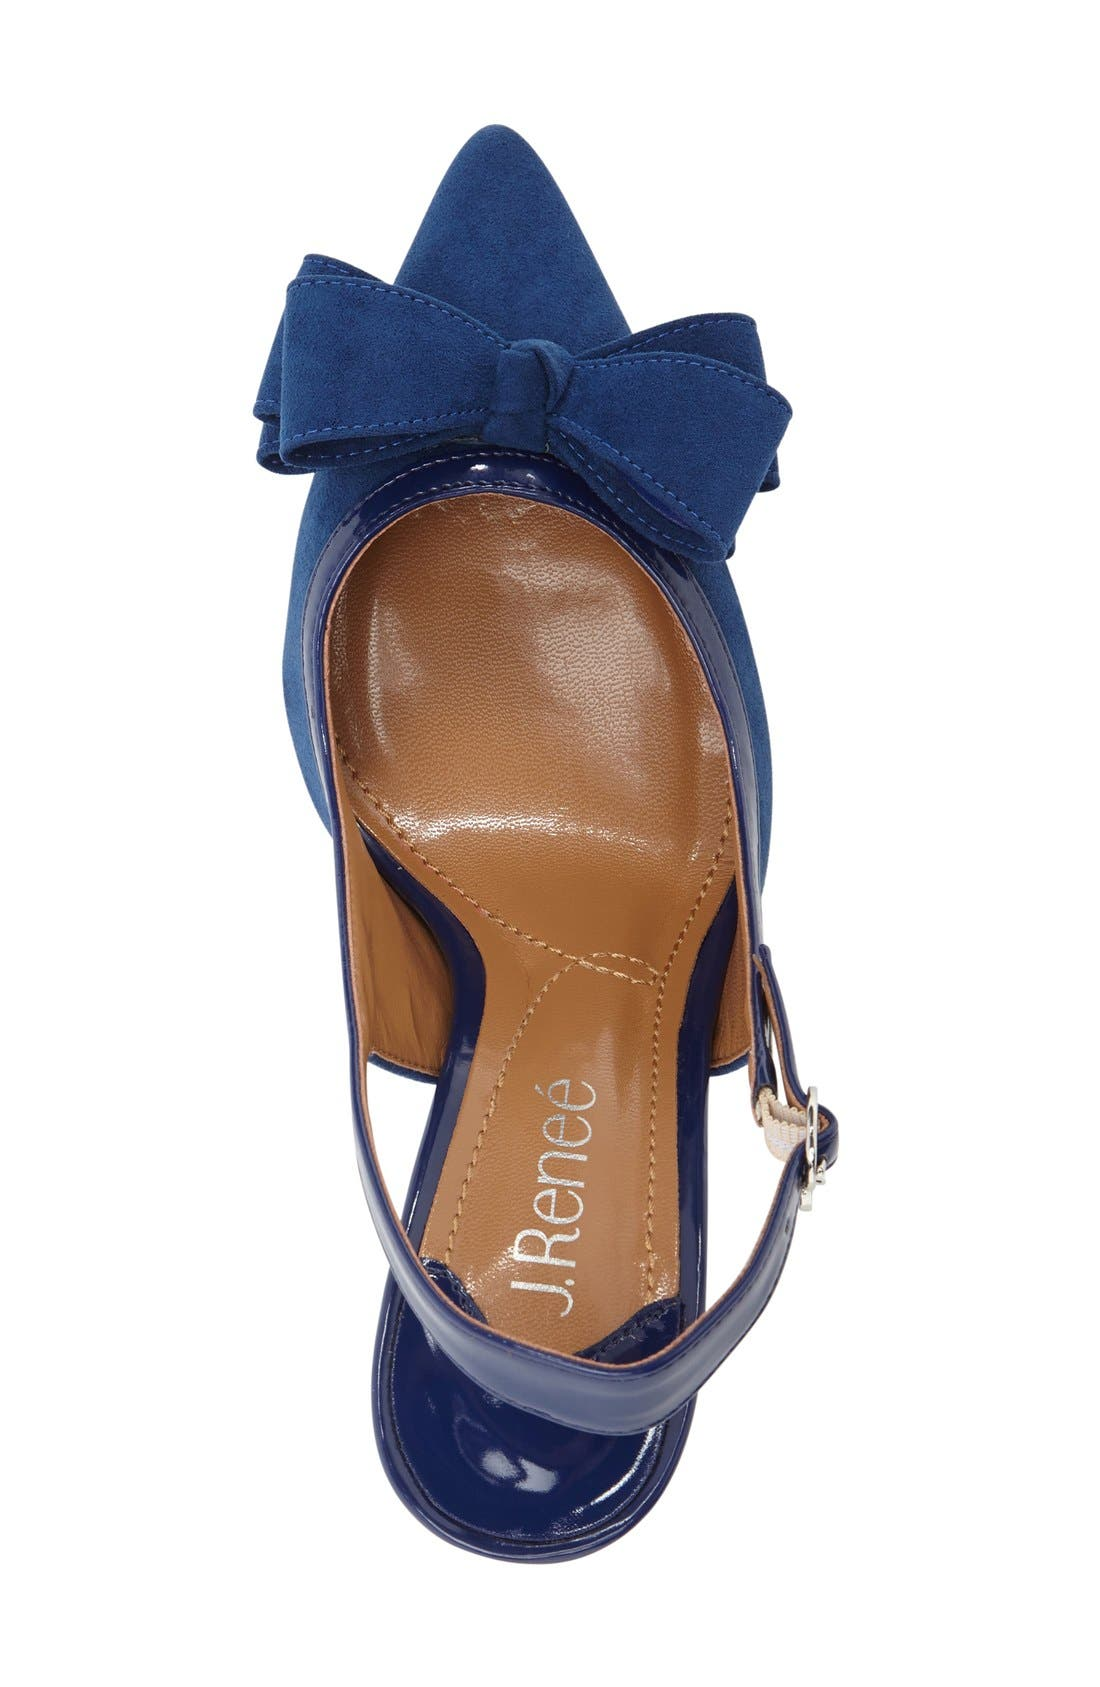 Charis Slingback Bow Pump,                             Alternate thumbnail 3, color,                             Imperial Blue Faux Suede